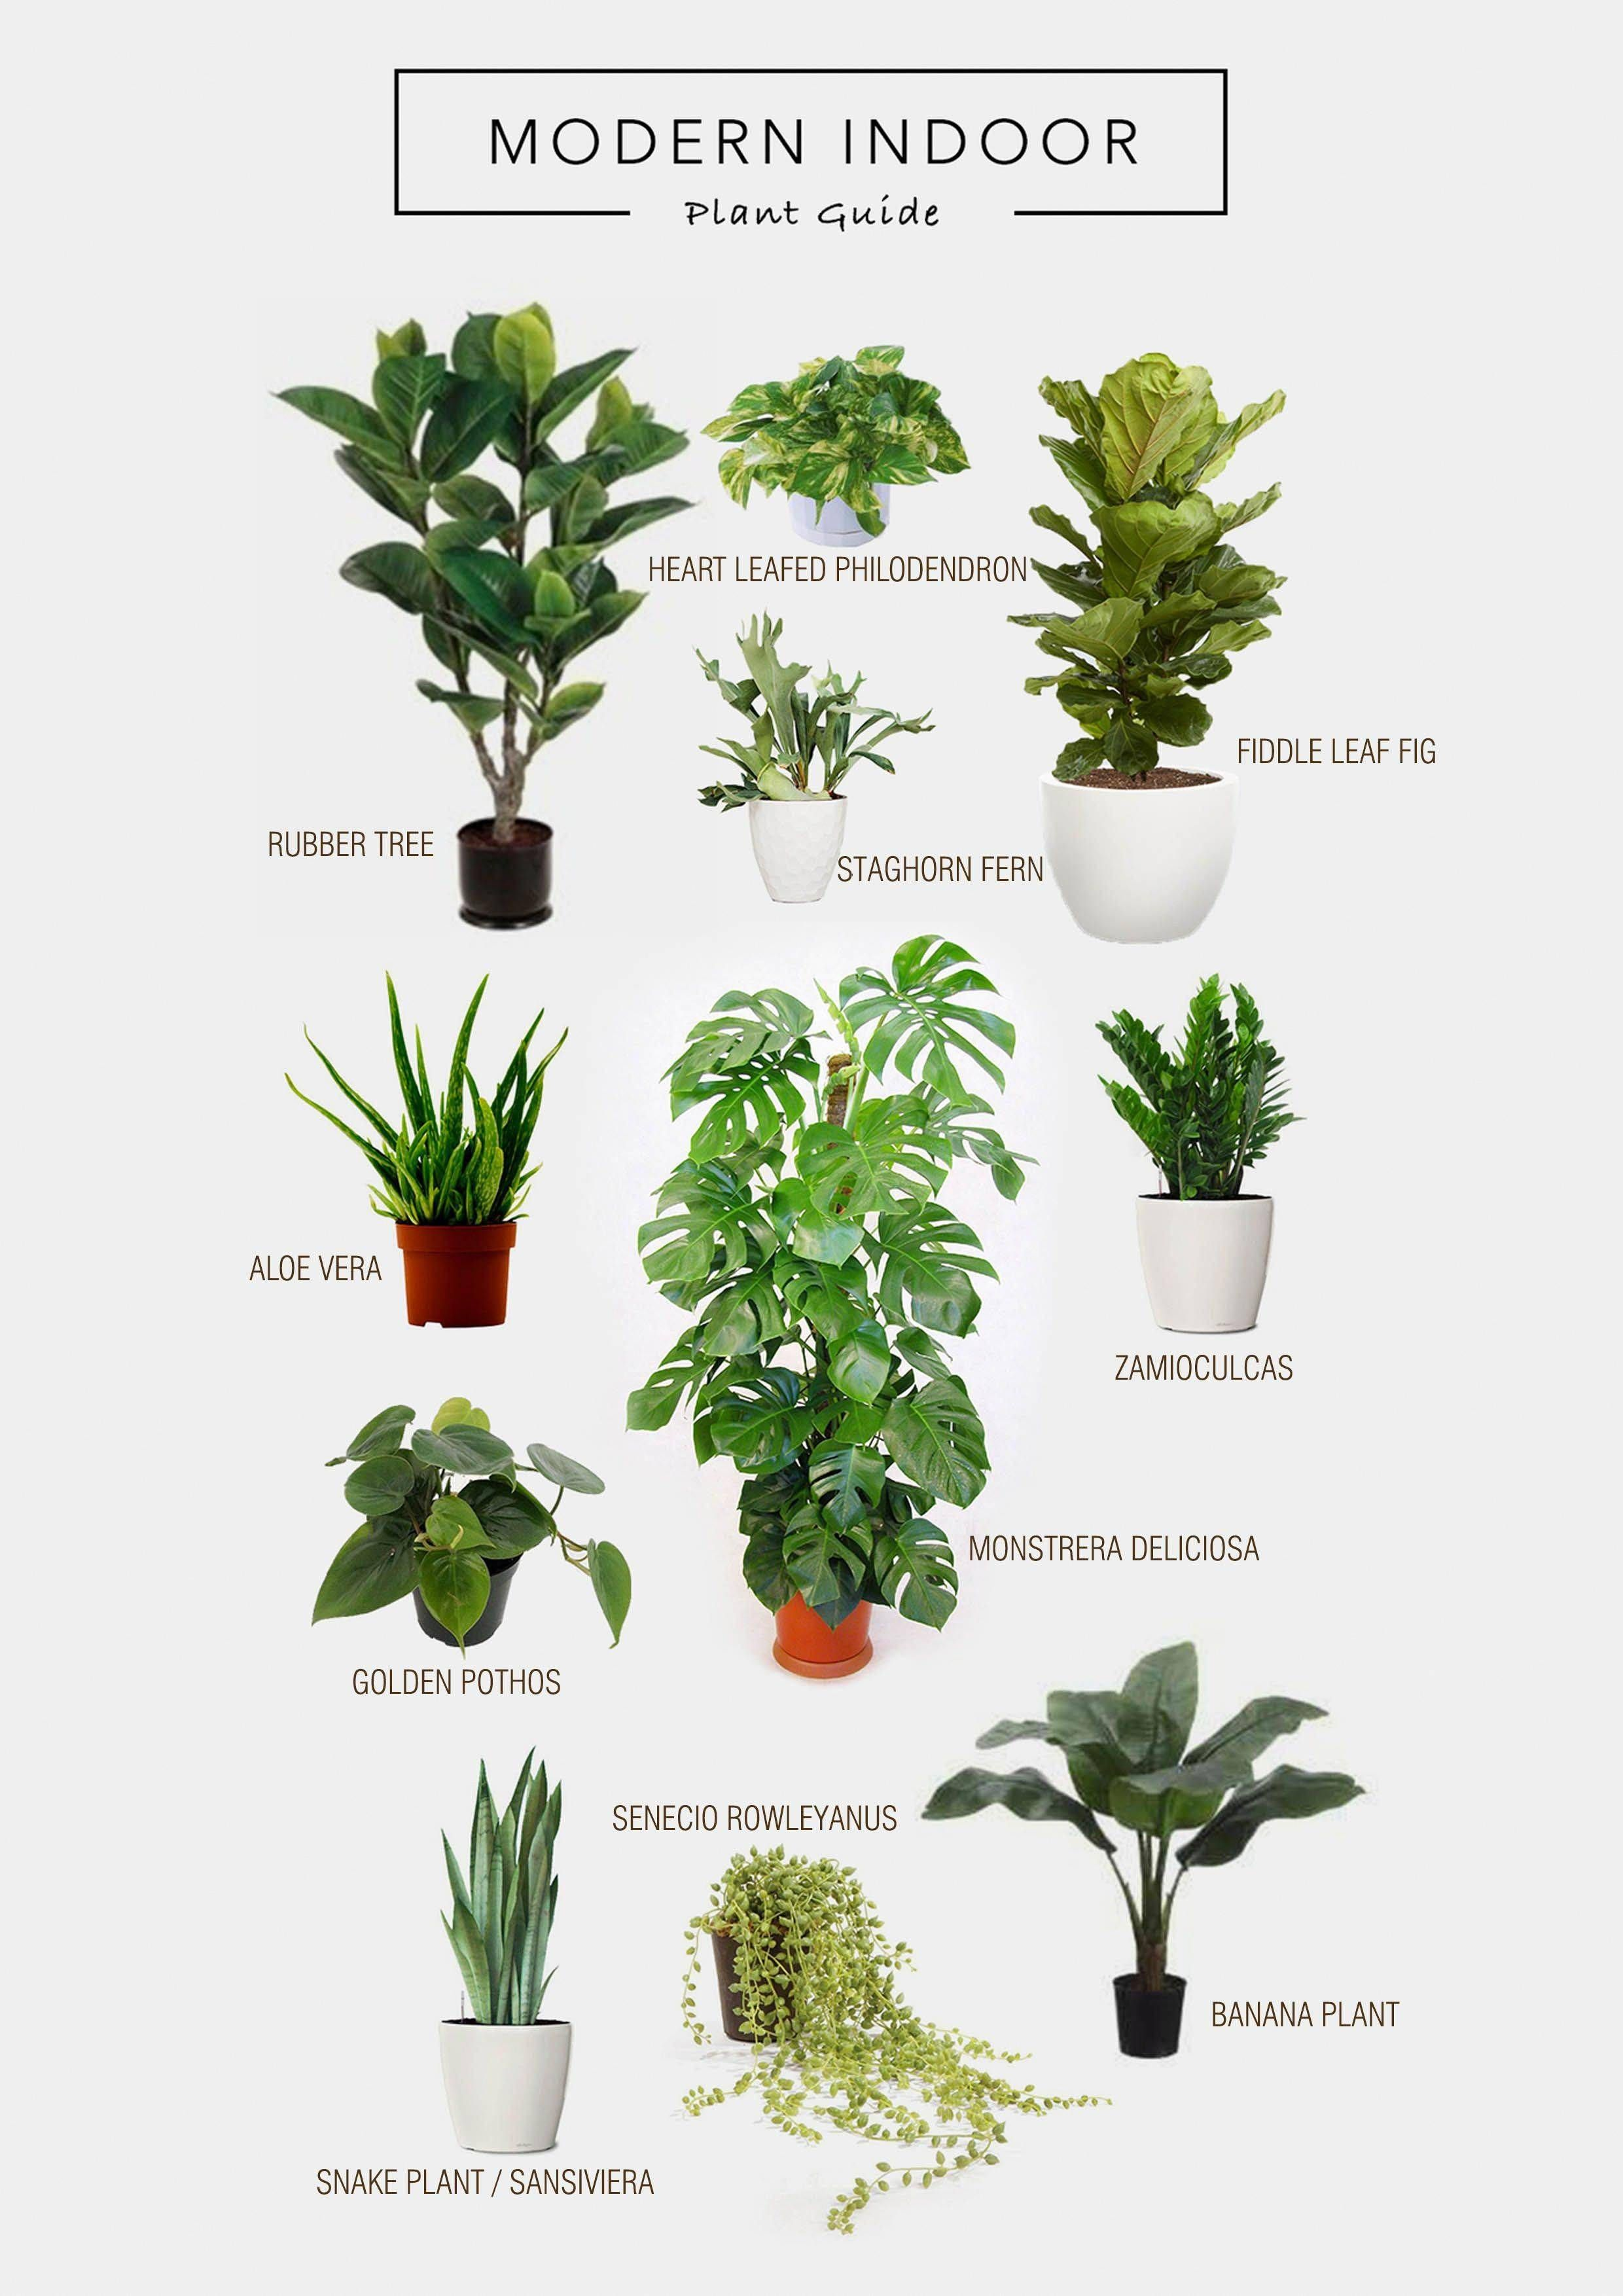 Non toxic House Plants for Cats More Image Visite #plantsindoor